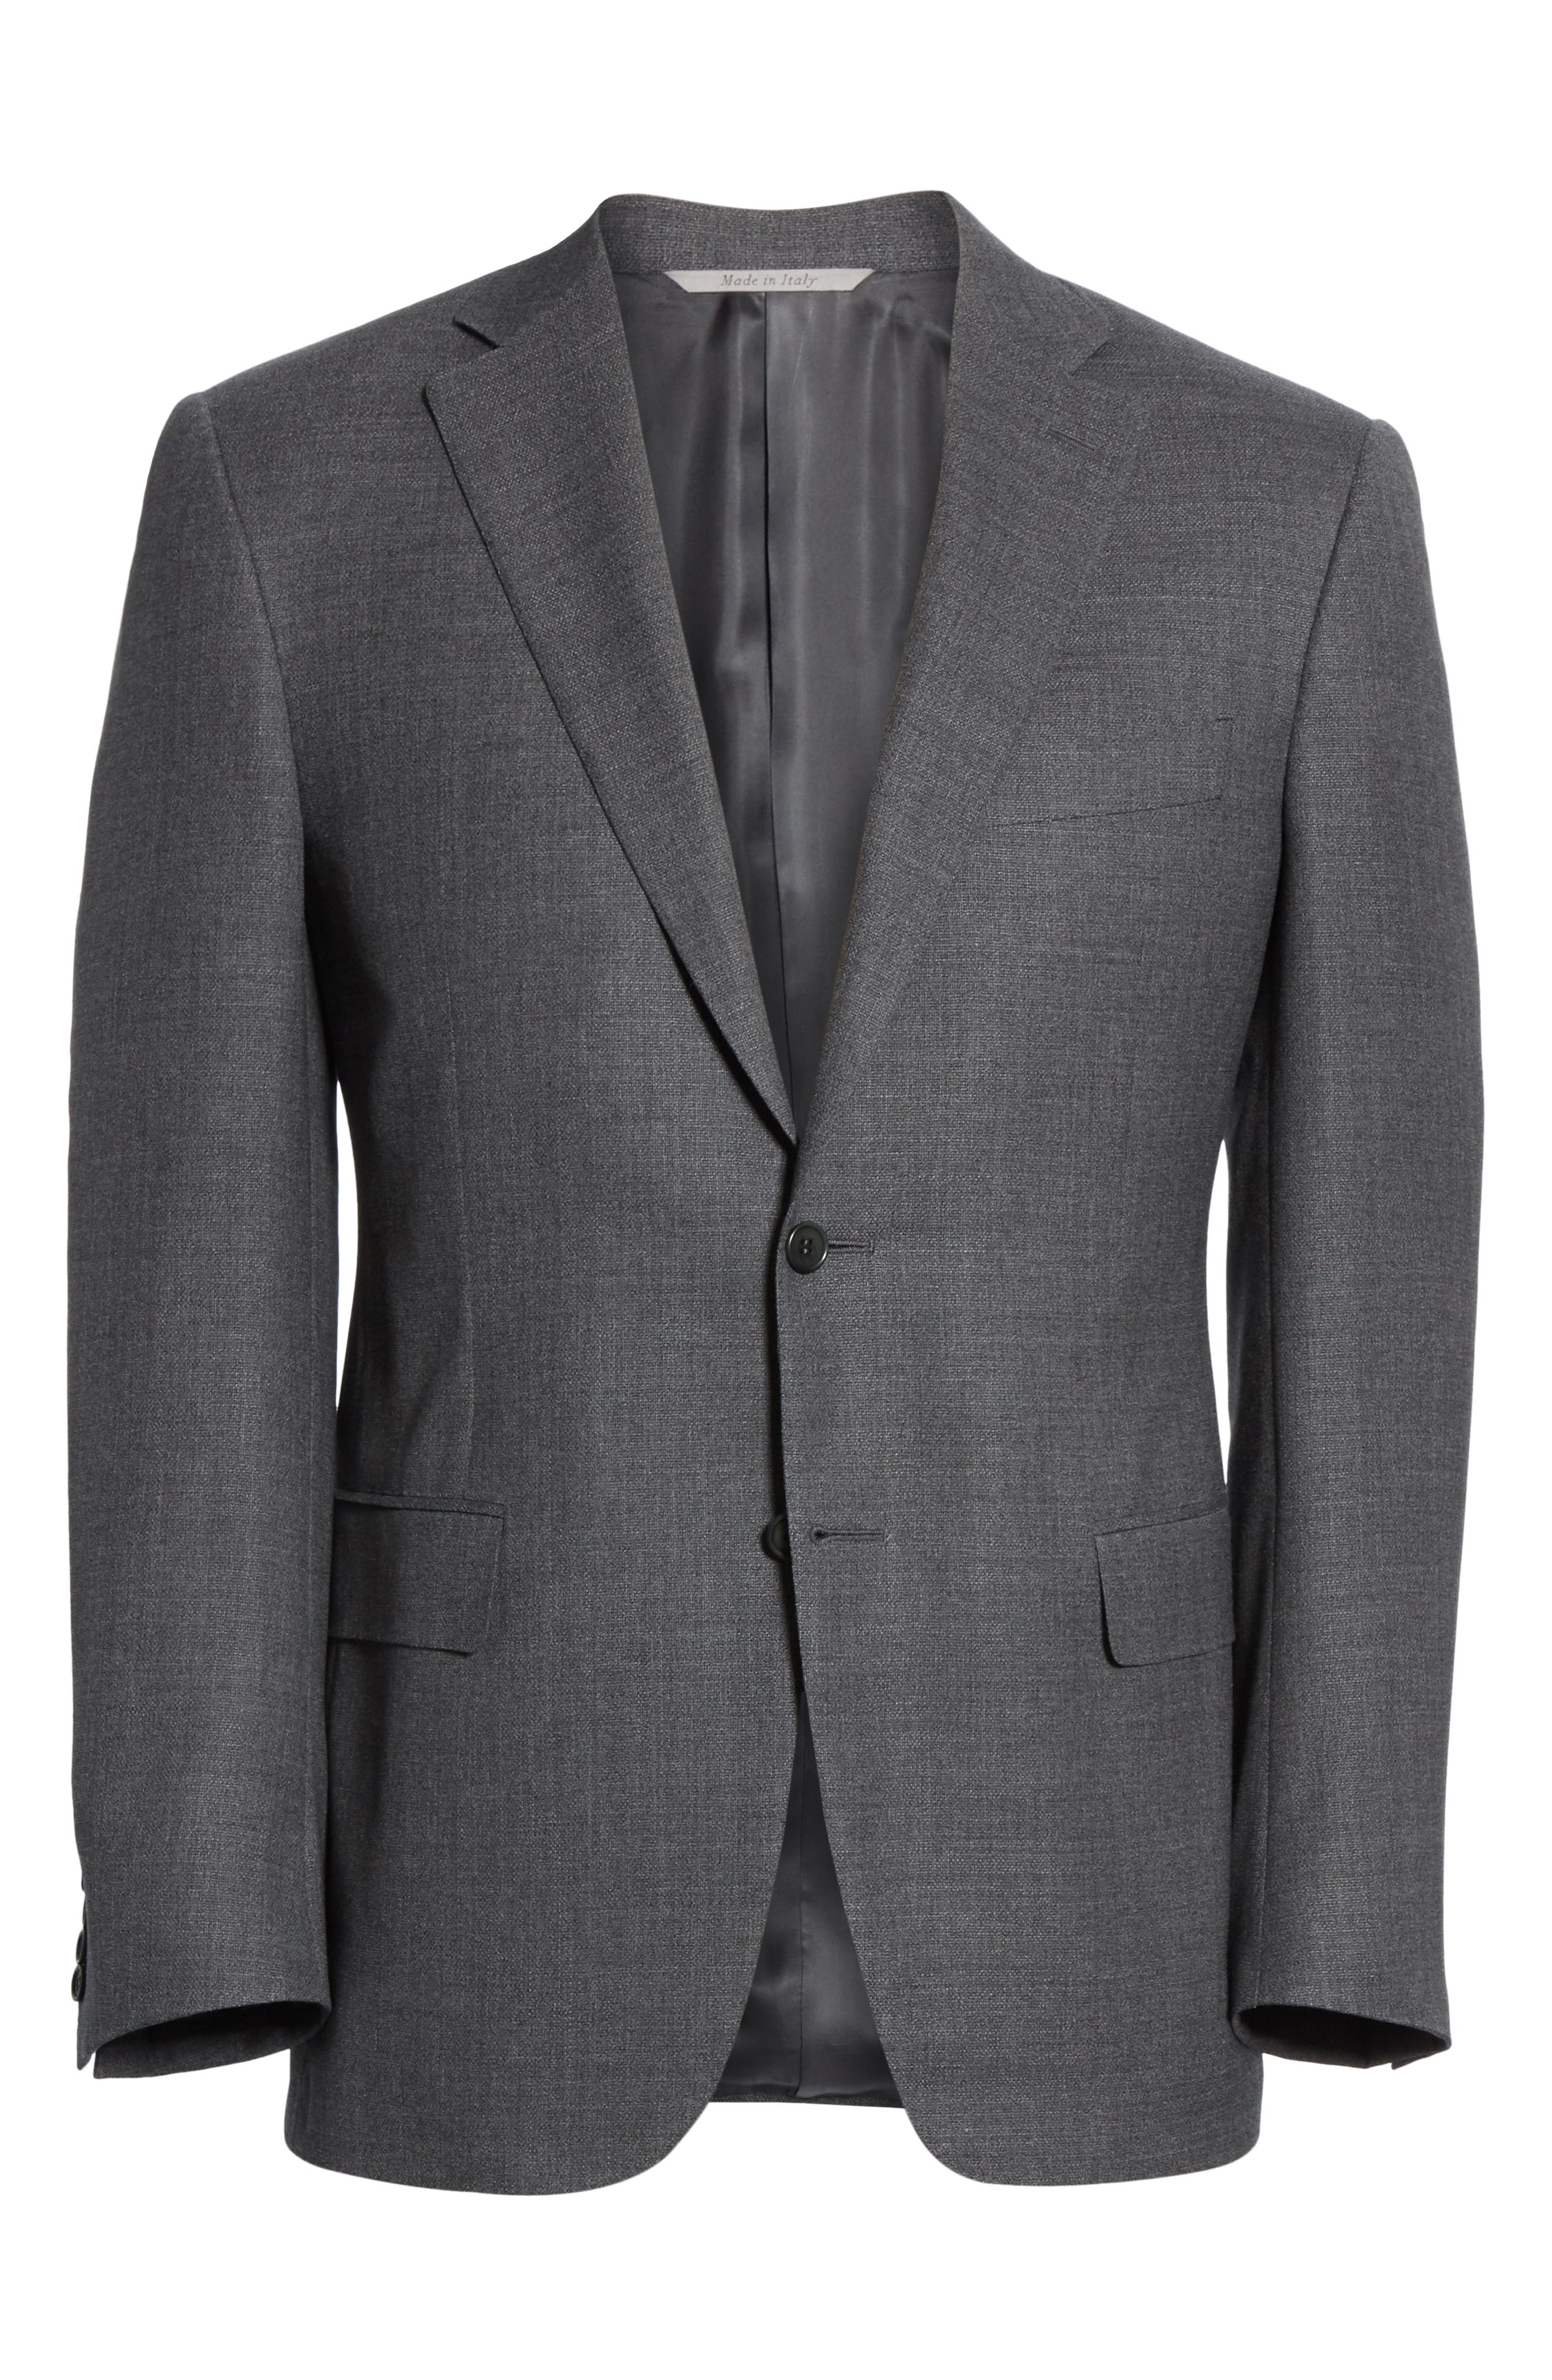 Sienna Classic Fit Solid Wool Sport Coat,                             Alternate thumbnail 5, color,                             CHARCOAL